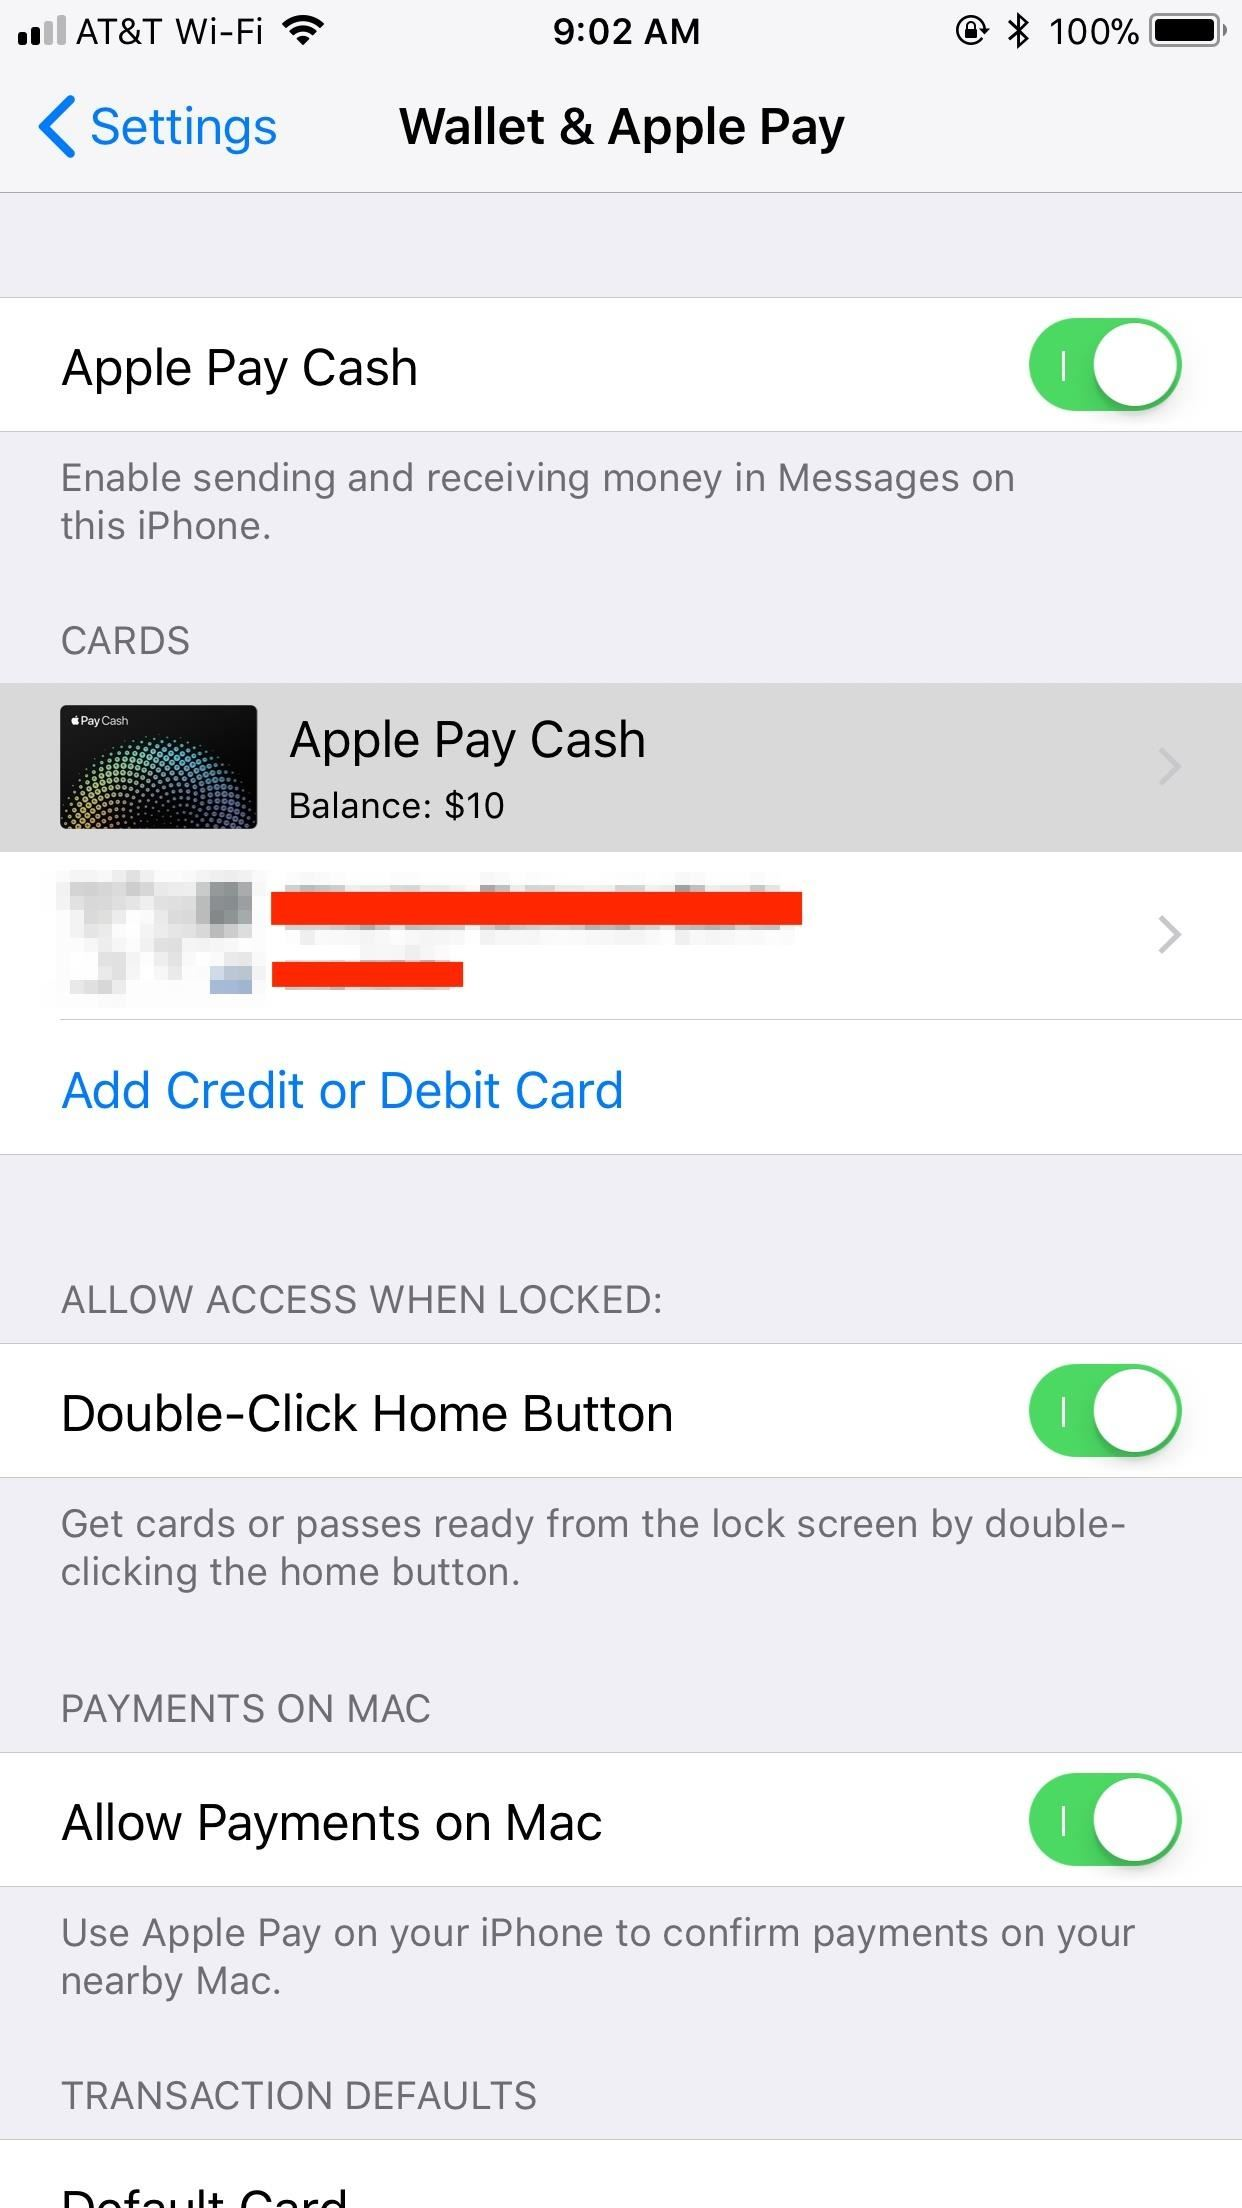 Apple Pay Cash 101: How to Transfer Money from Your Card to Your Bank Account